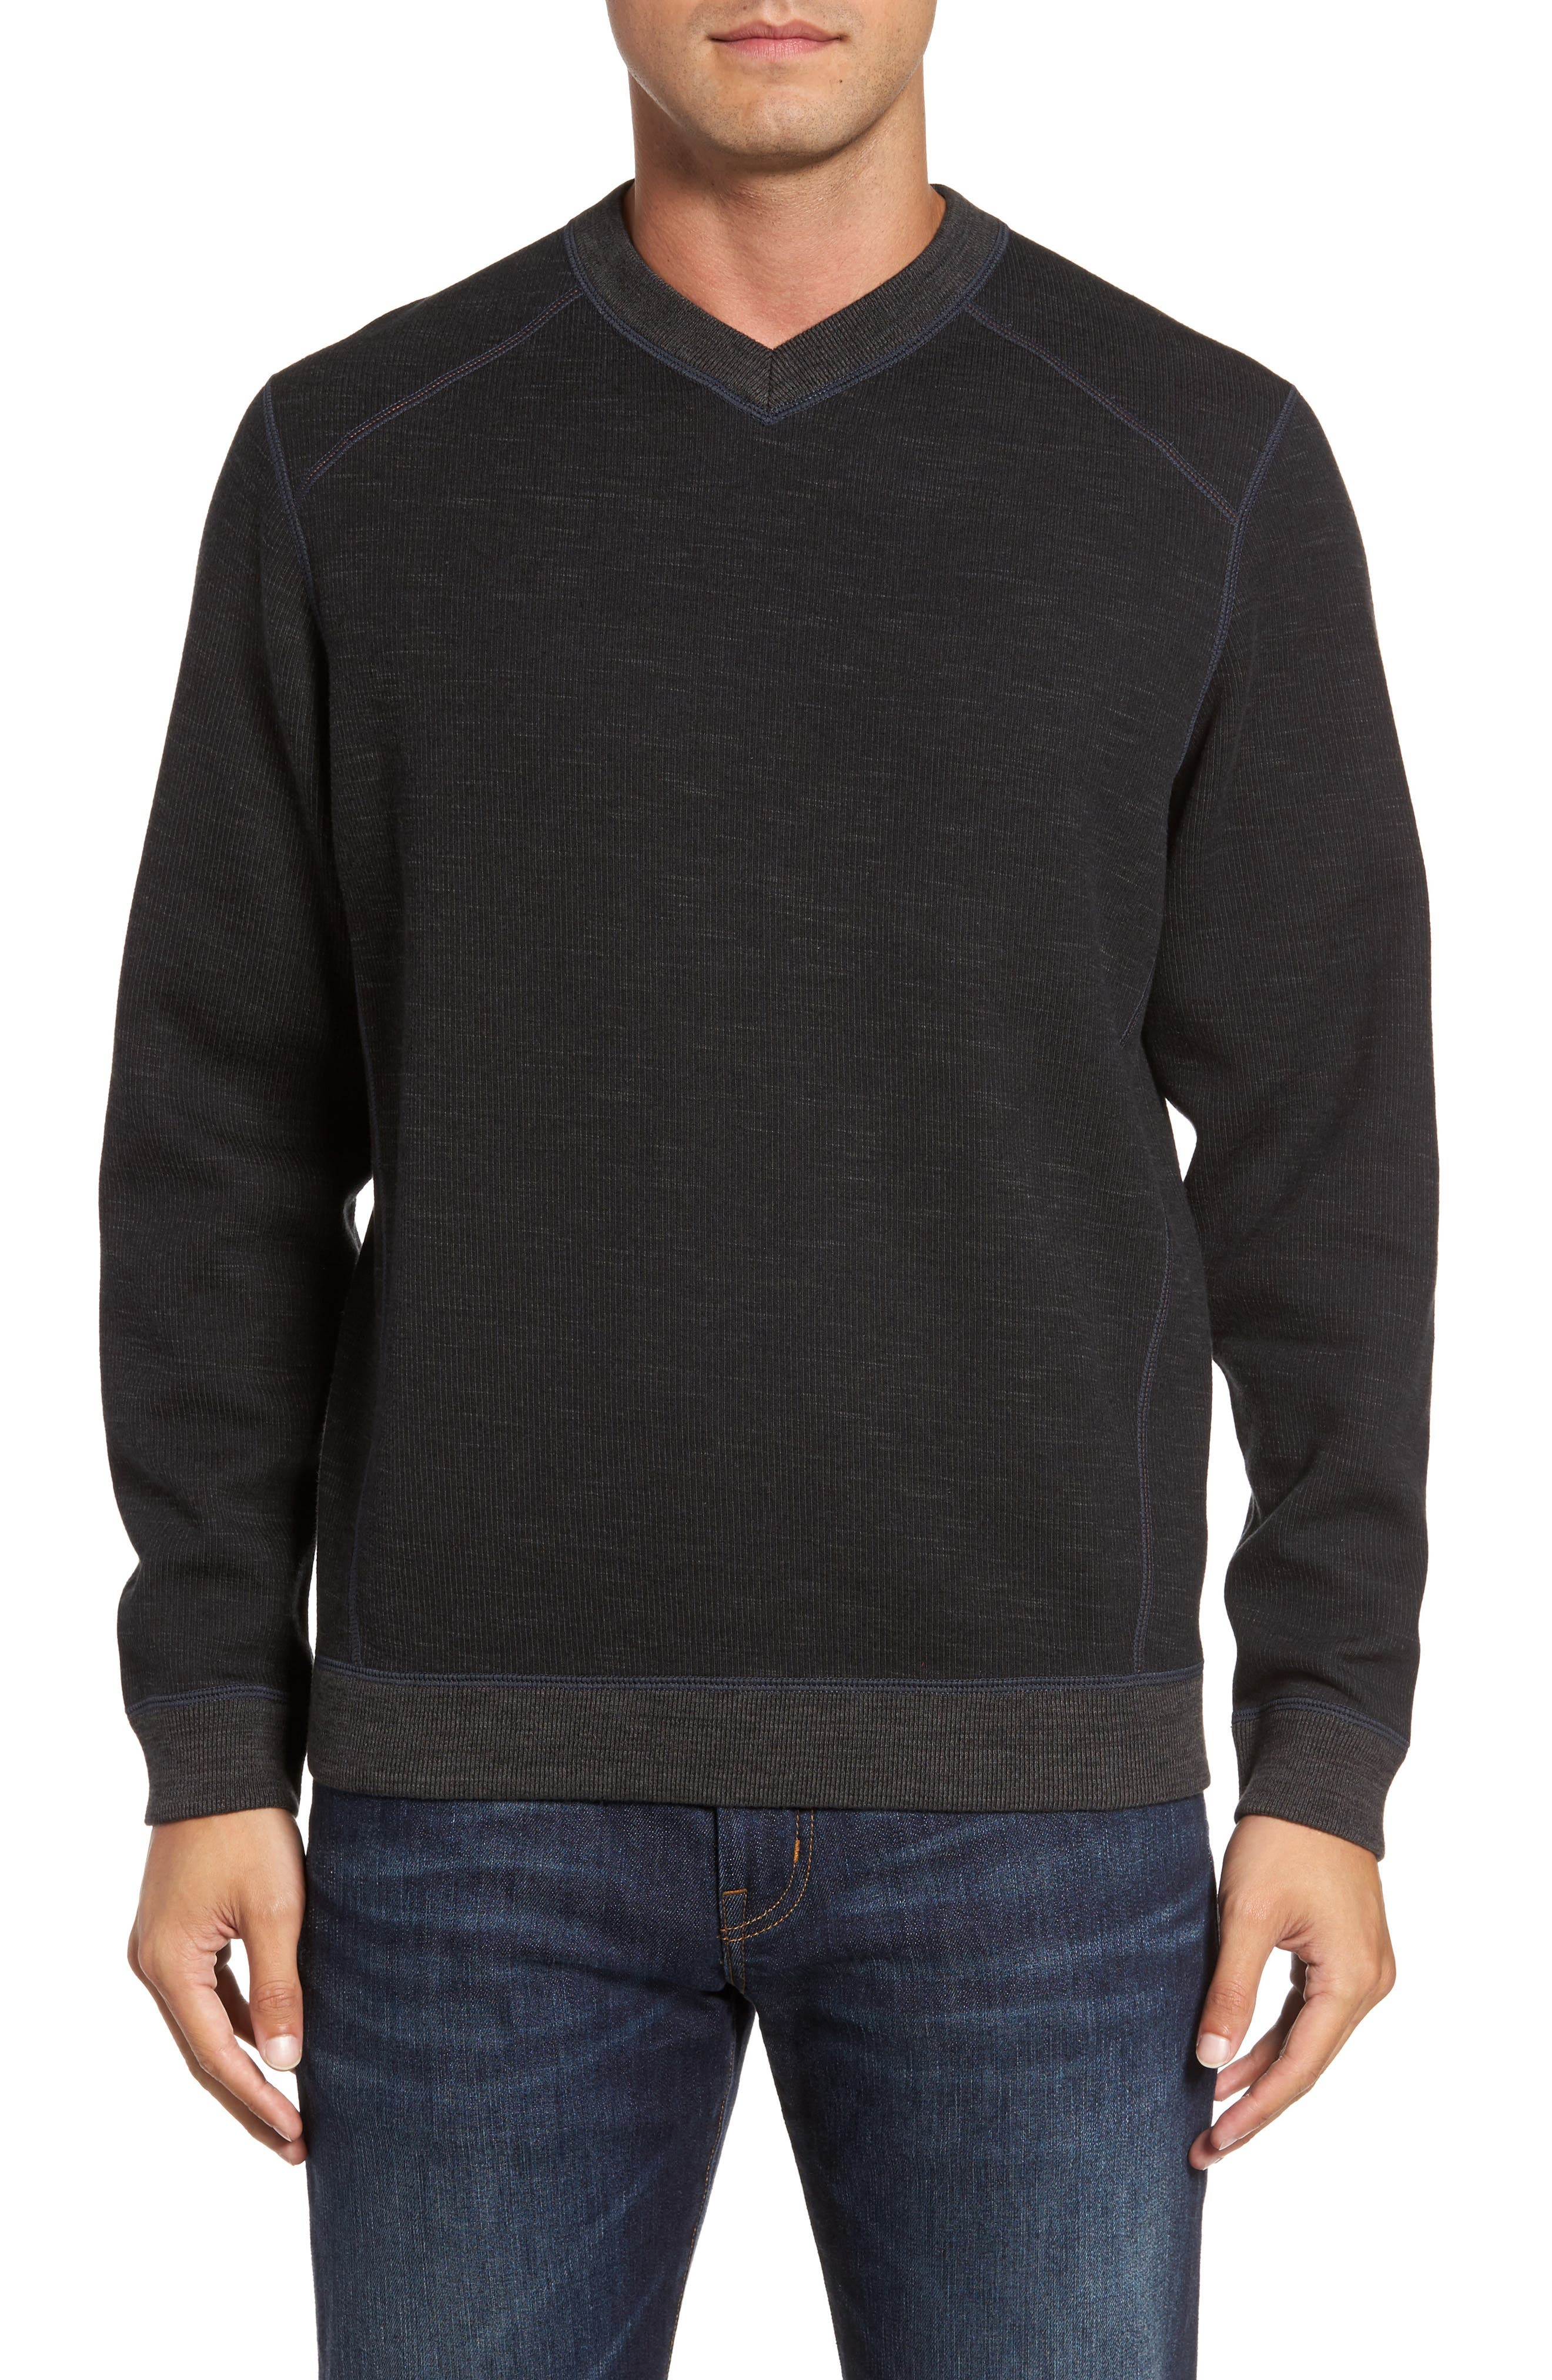 Flipside Pro Reversible Sweatshirt,                         Main,                         color, Black